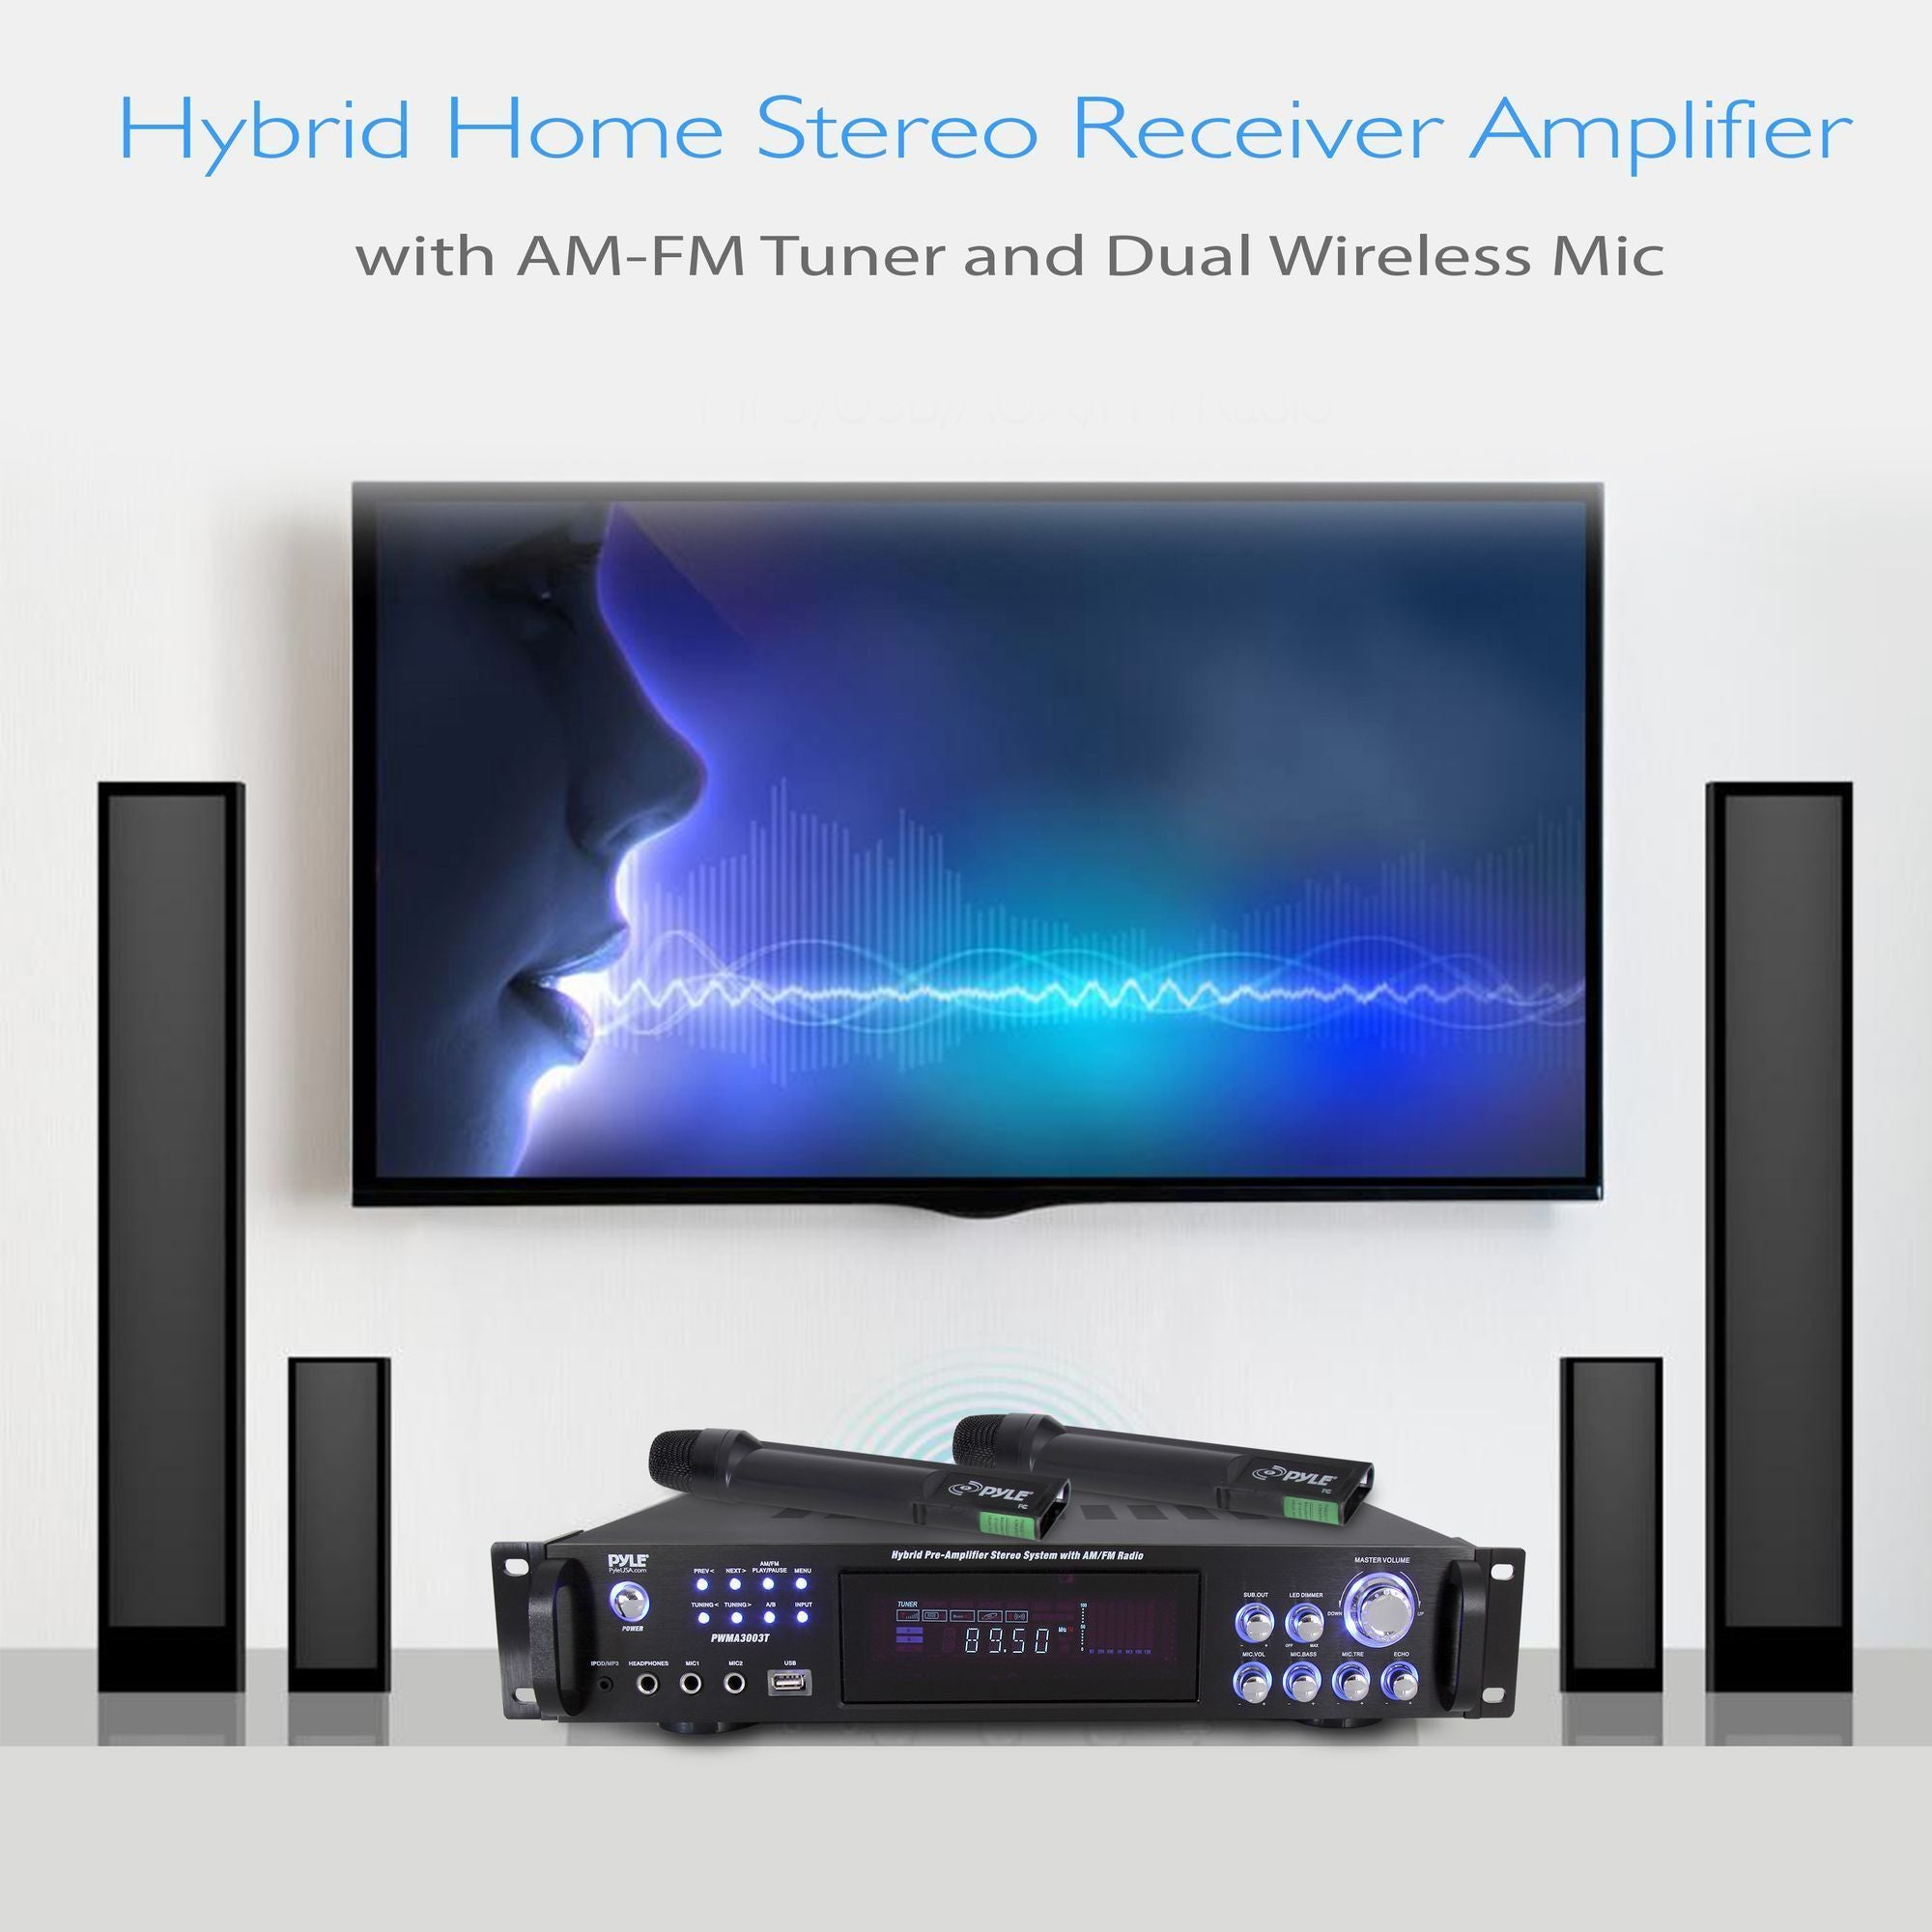 Pyle 4 Channel Home Audio Power Amplifier - 3000 Watt Stereo Receiver w/ Speaker Selector, AM FM Radio, USB, Headphone, 2 Wireless Mics for Karaoke, Great for Home Entertainment System - PWMA3003T